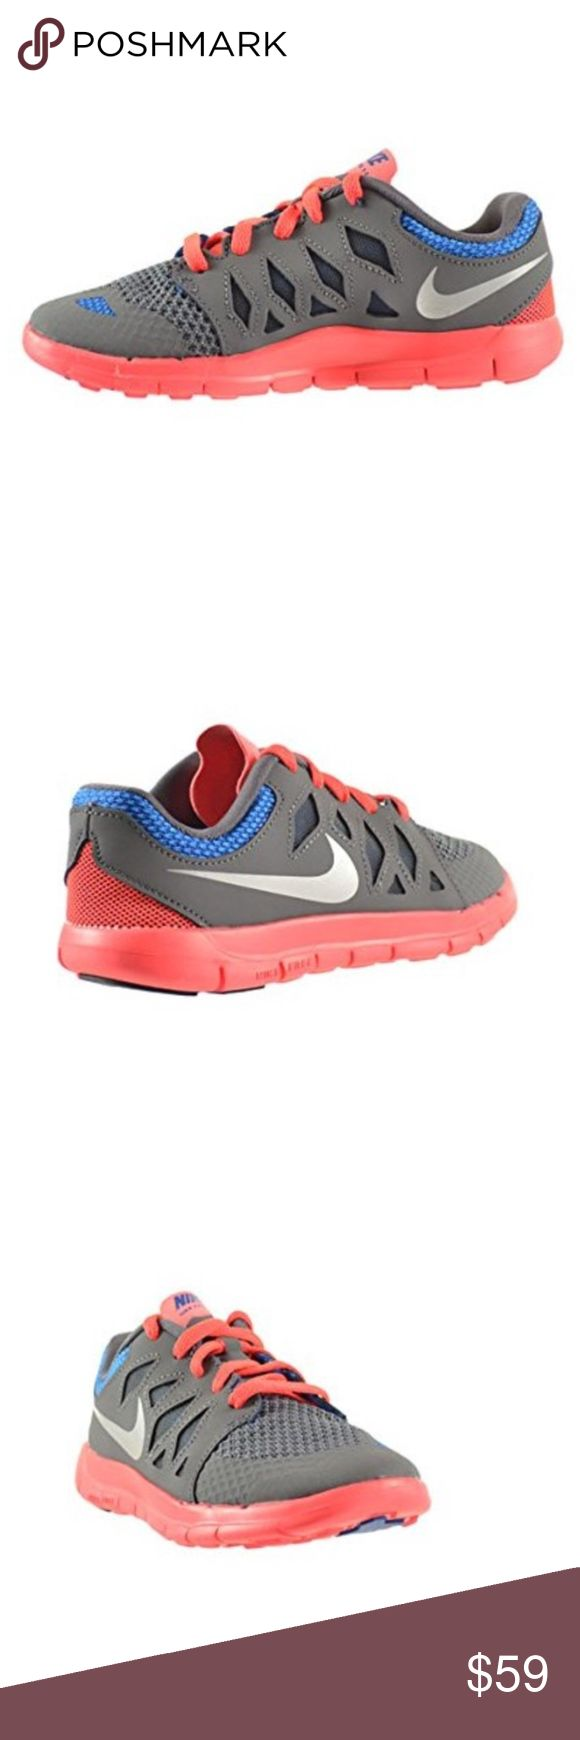 Nike Free 5 (PS) Little Kids Shoes Dark Grey/Metal Nike Free 5 (PS) Little Kids Shoes Dark Grey/Metallic Silver-Laser Crimson 644431-002  (USA) Size: 1Y   Brand New without box - Never worn Nike Shoes Sneakers